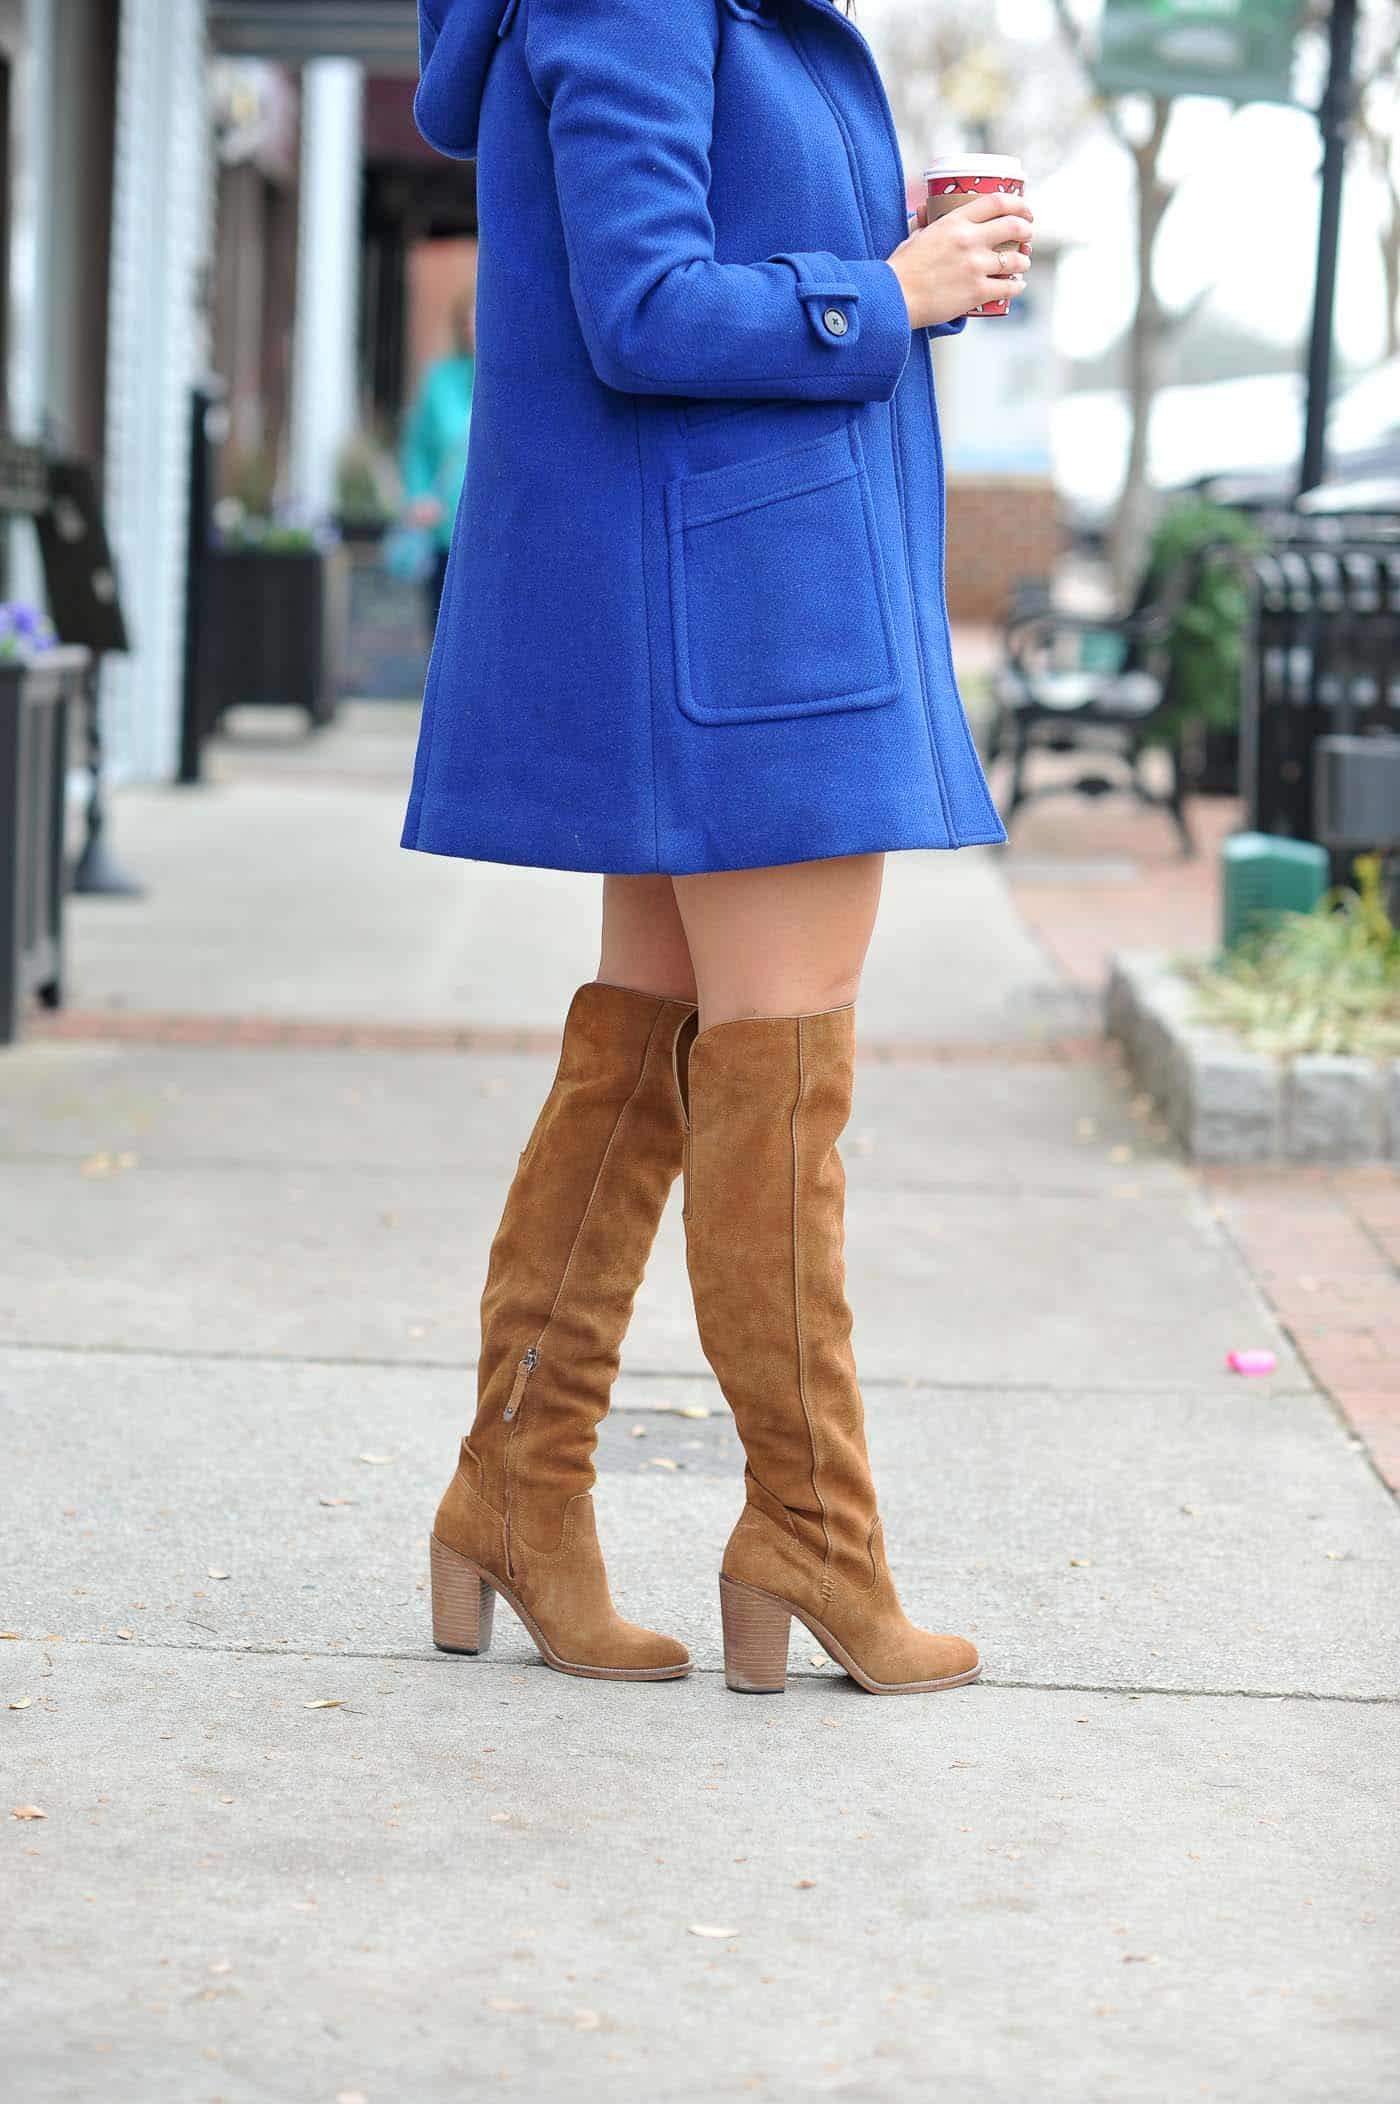 sweater and mini skirts for fall, thigh high boots outfits - My Style Vita @mystylevita